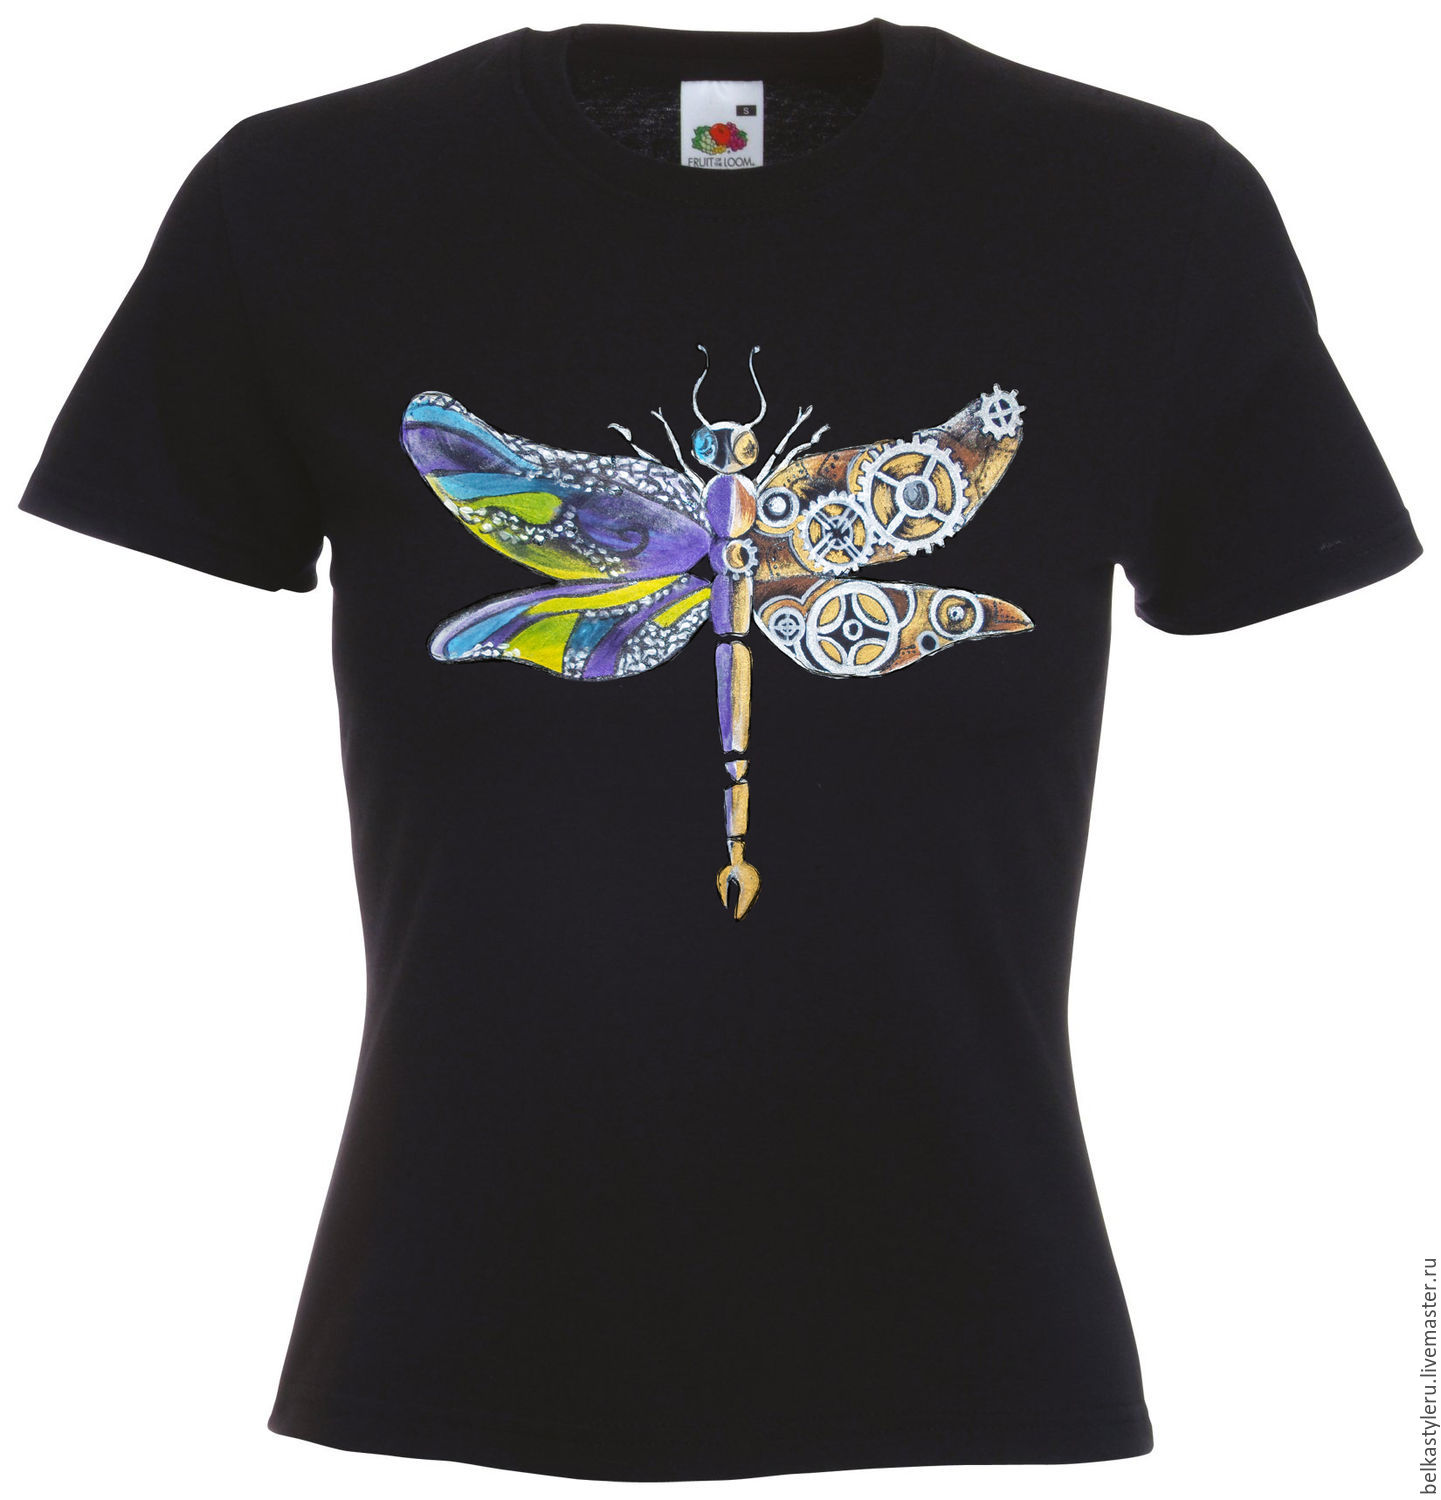 Design t shirt hand made - Steampunk Handmade T Shirt Hand Painted Dragonfly Steampunk Belkastyle Handmade And Design